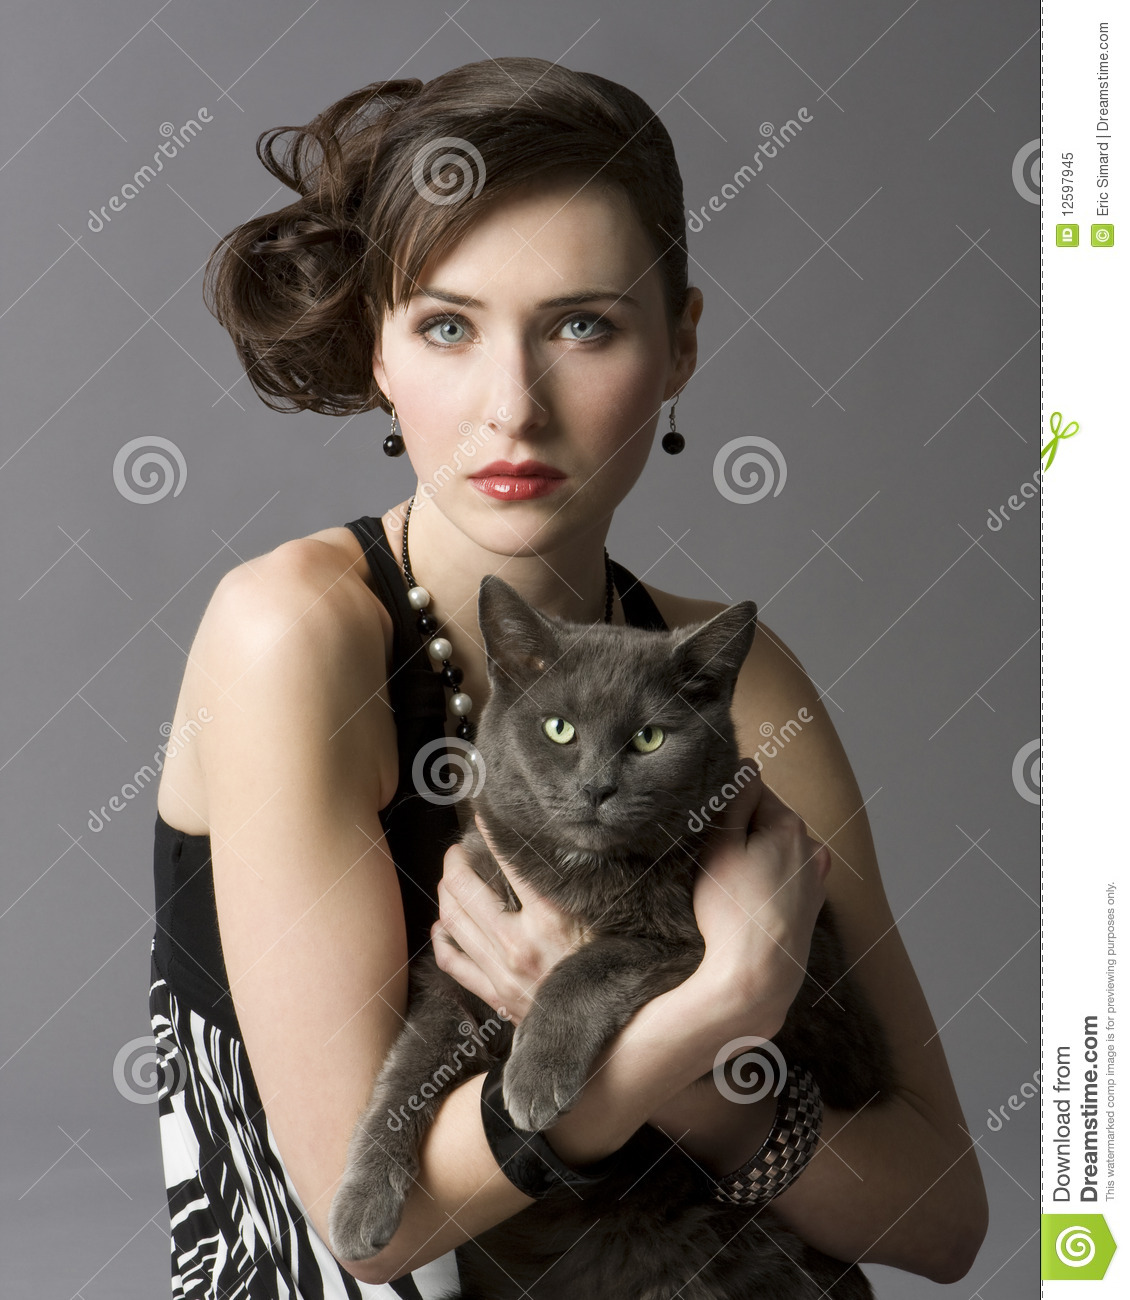 Woman With Cat Royalty Free Stock Photo - Image: 12597945 Smiling Dog And Cat